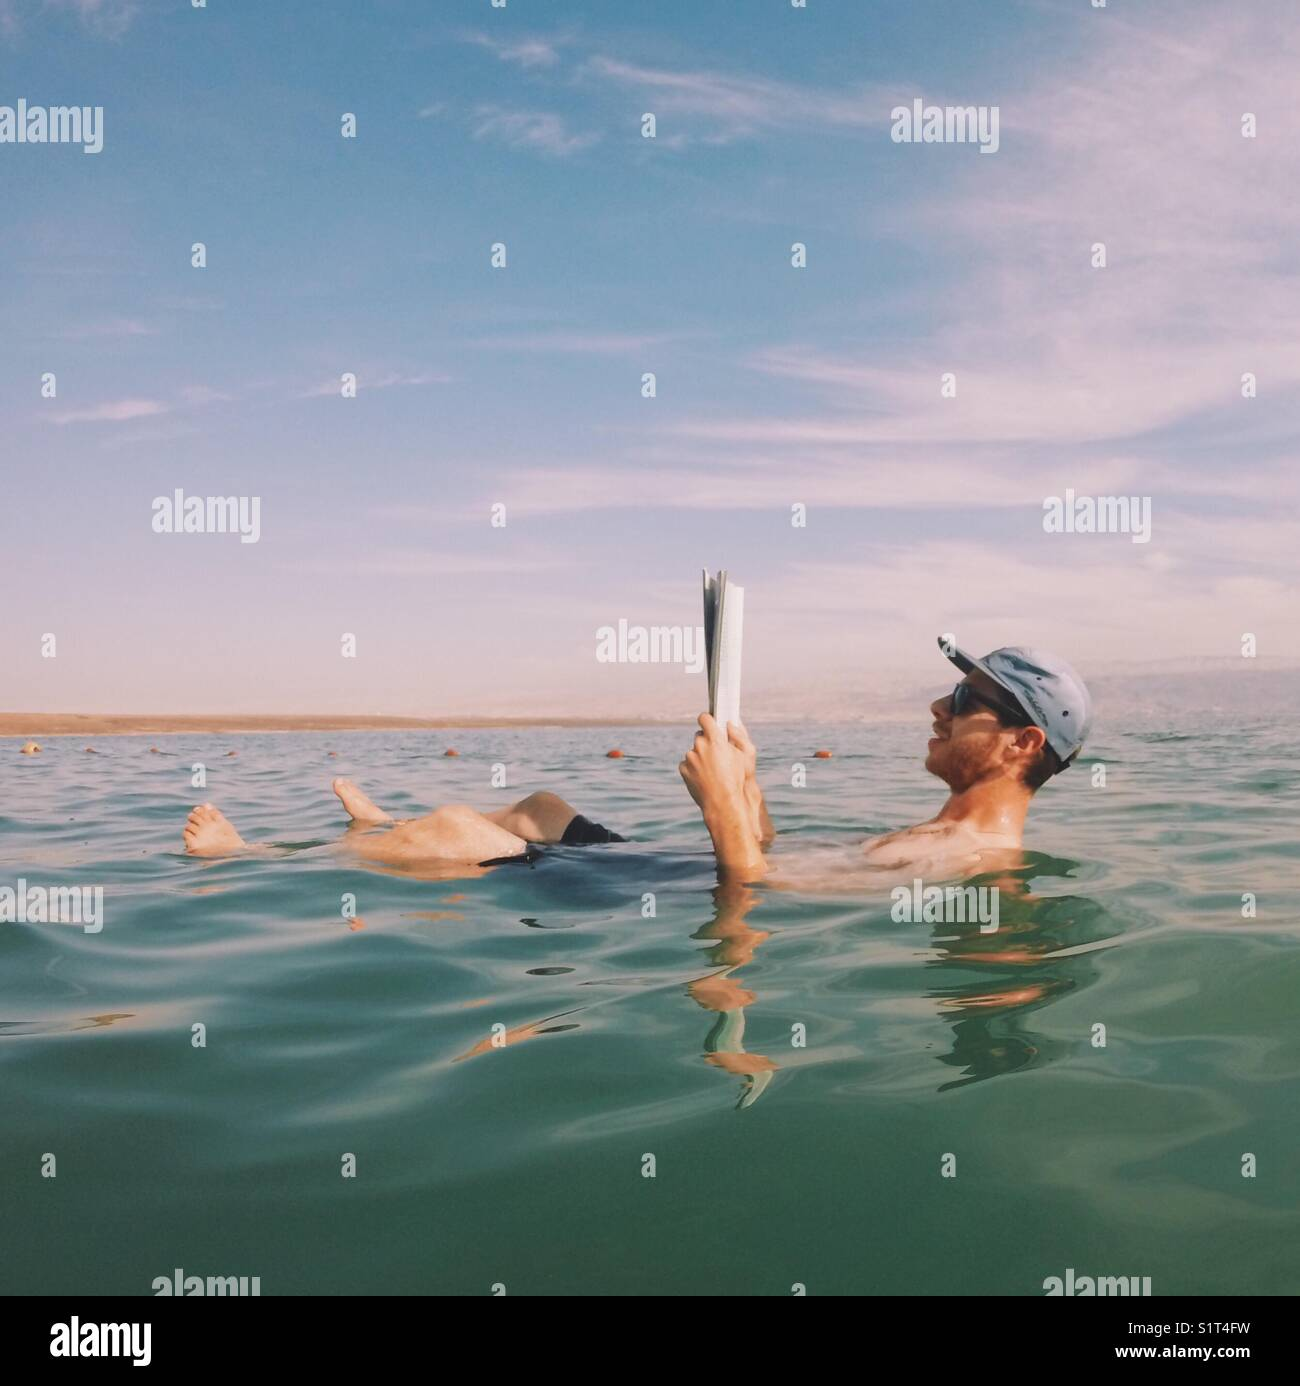 Floating in the Dead Sea Stock Photo